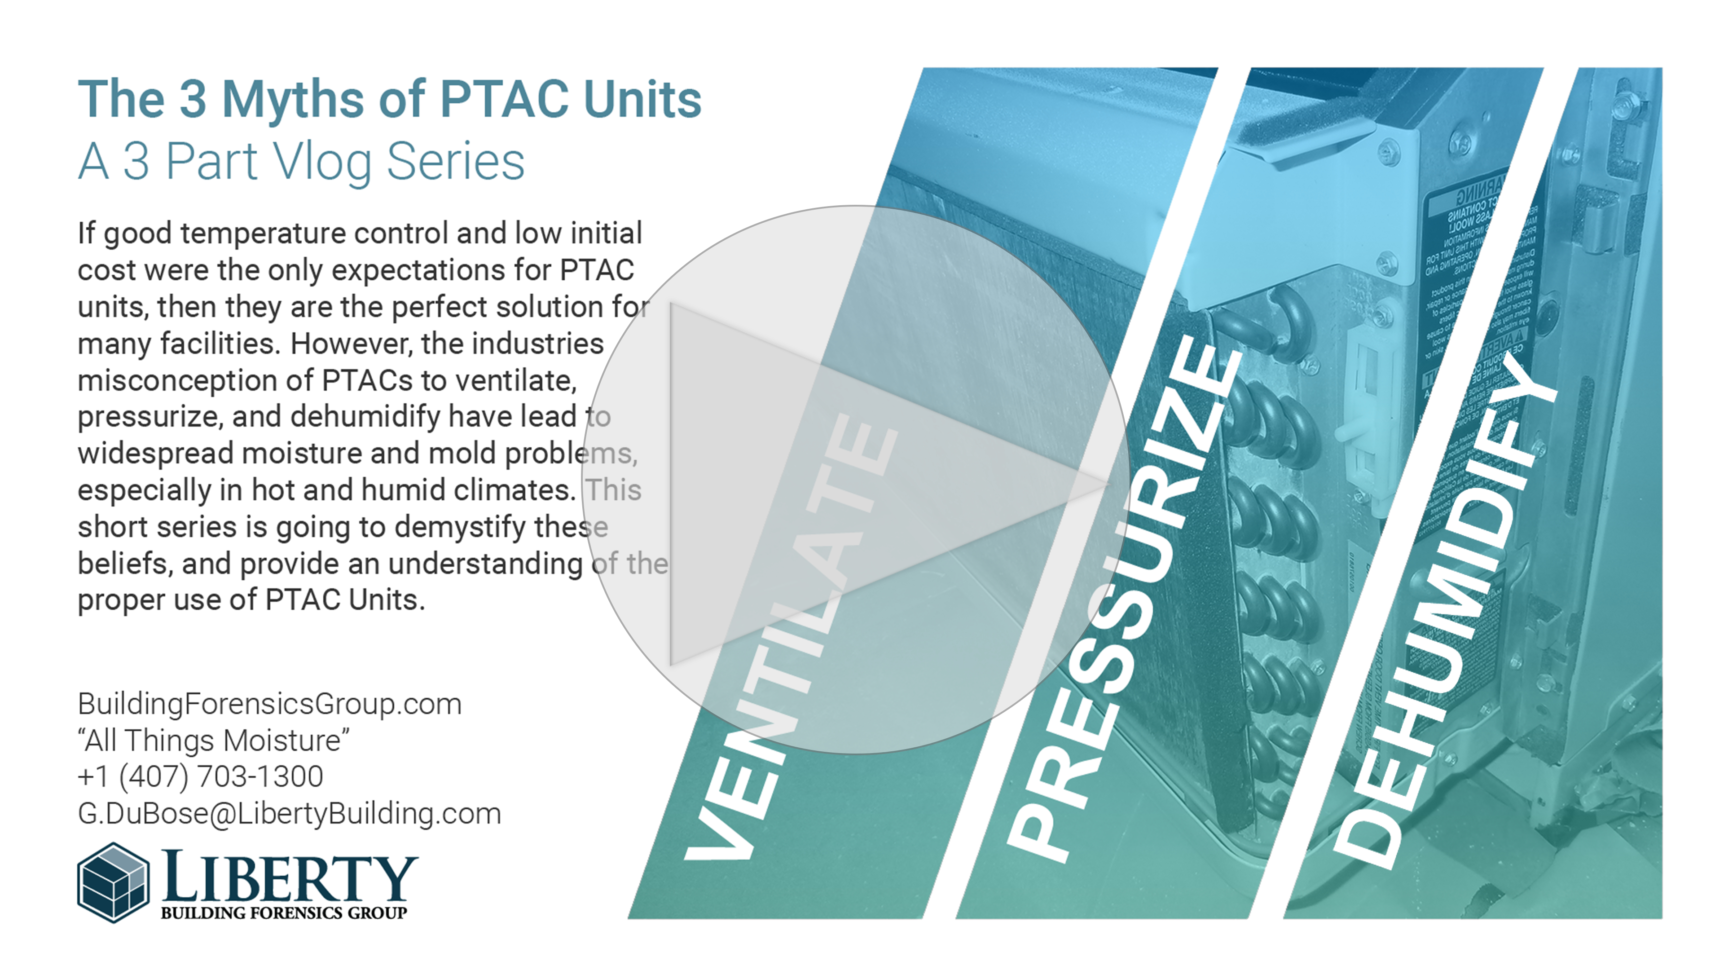 Ashrae 62.1 2013 Ventilation Calculator Spreadsheet Throughout The 3 Myths Of Ptac Units  All Things Moisture